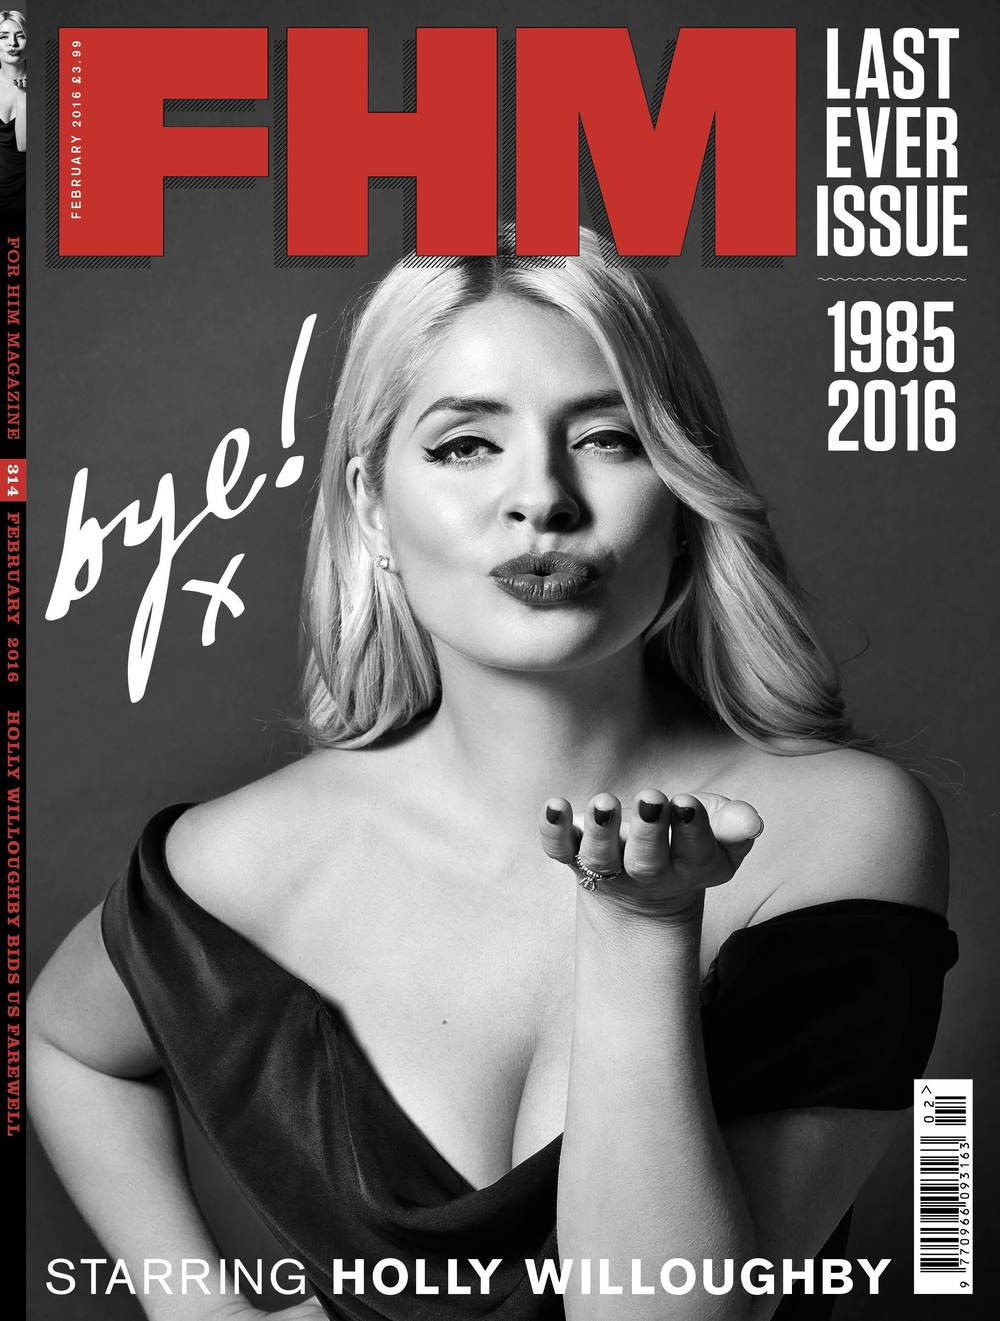 Holly Willoughby FHM magazine cover last issue 2016